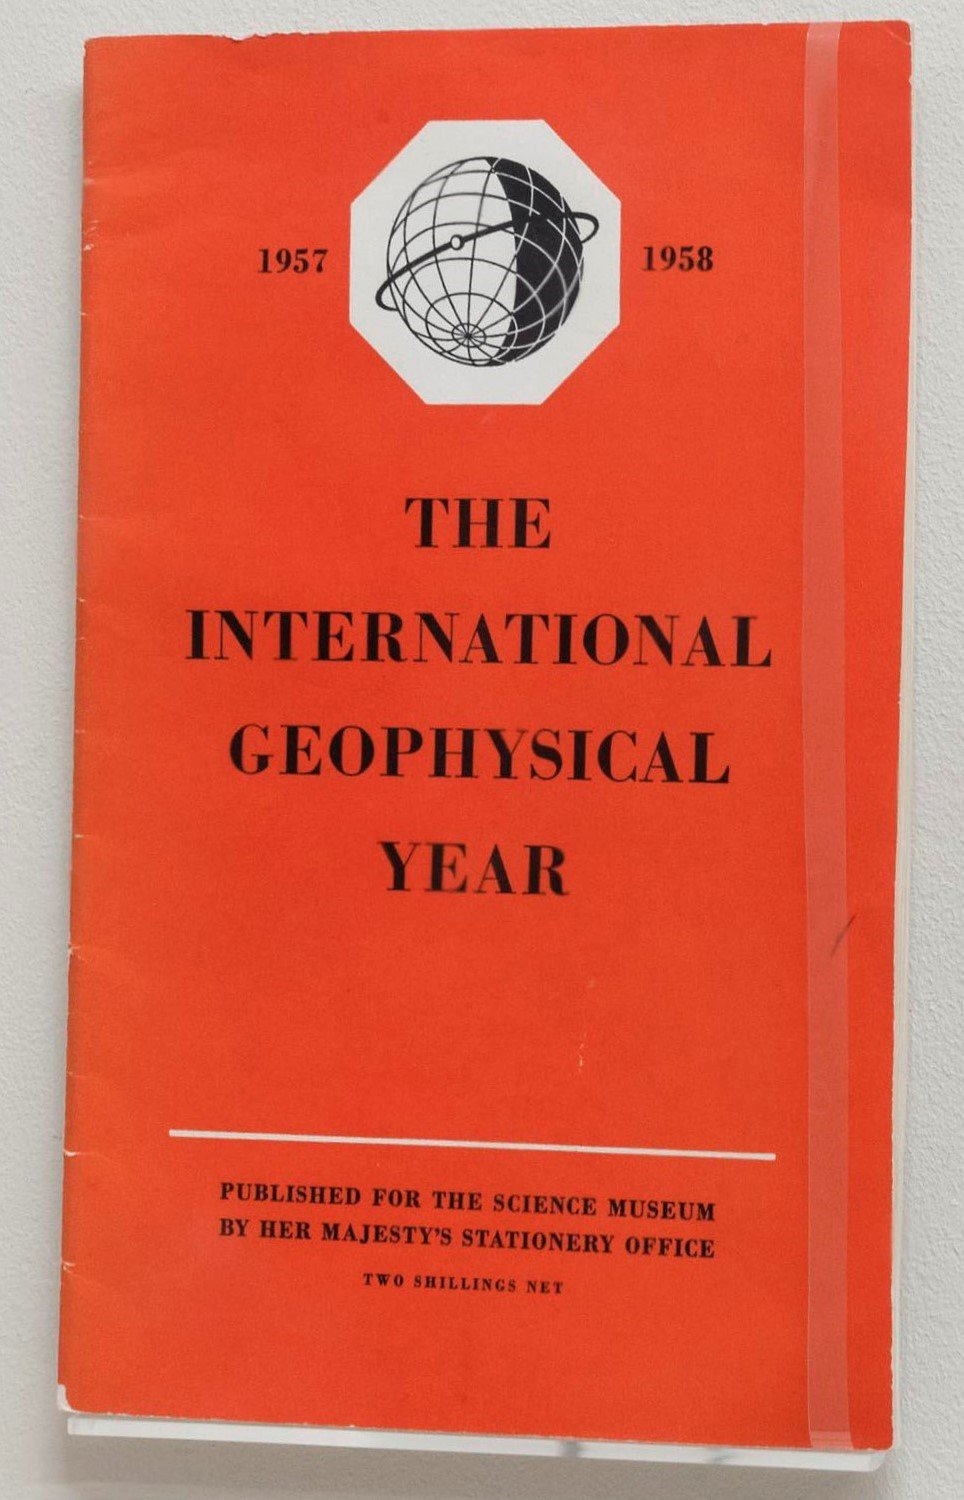 A photograph of the front of the International Geophysical Year booklet